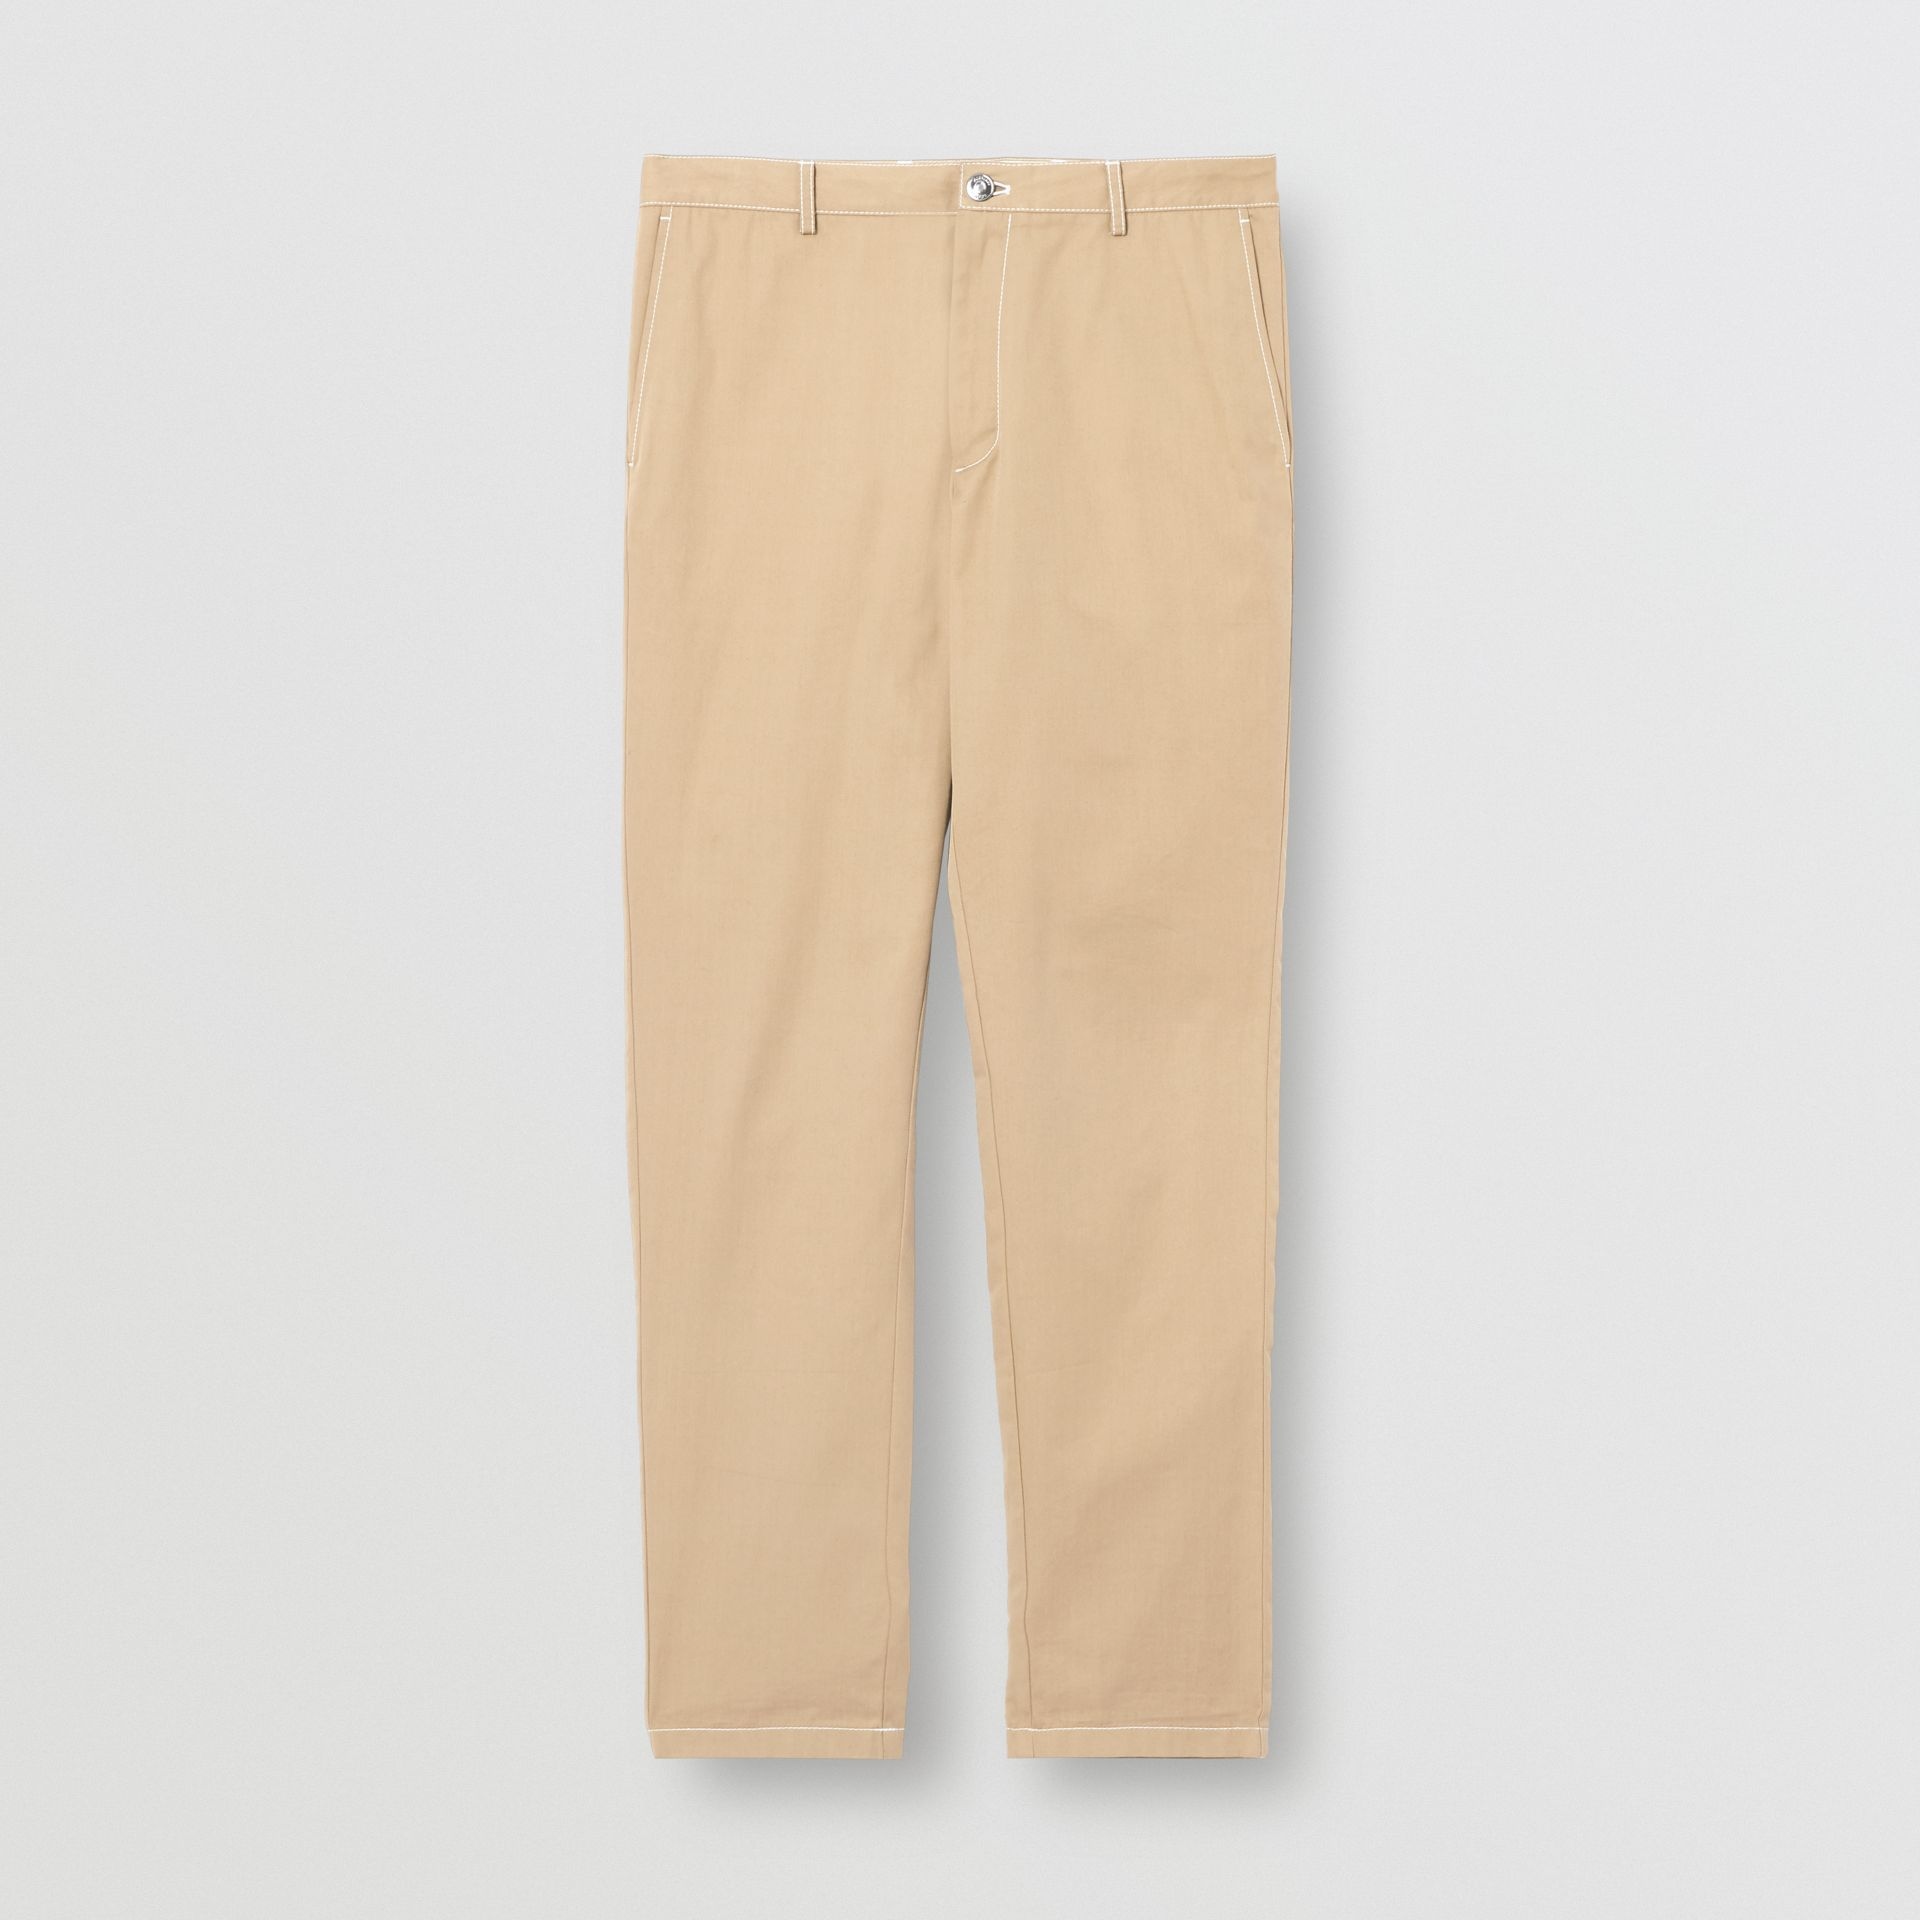 Pantalon chino slim en coton avec surpiqûres (Miel) - Homme | Burberry - photo de la galerie 3